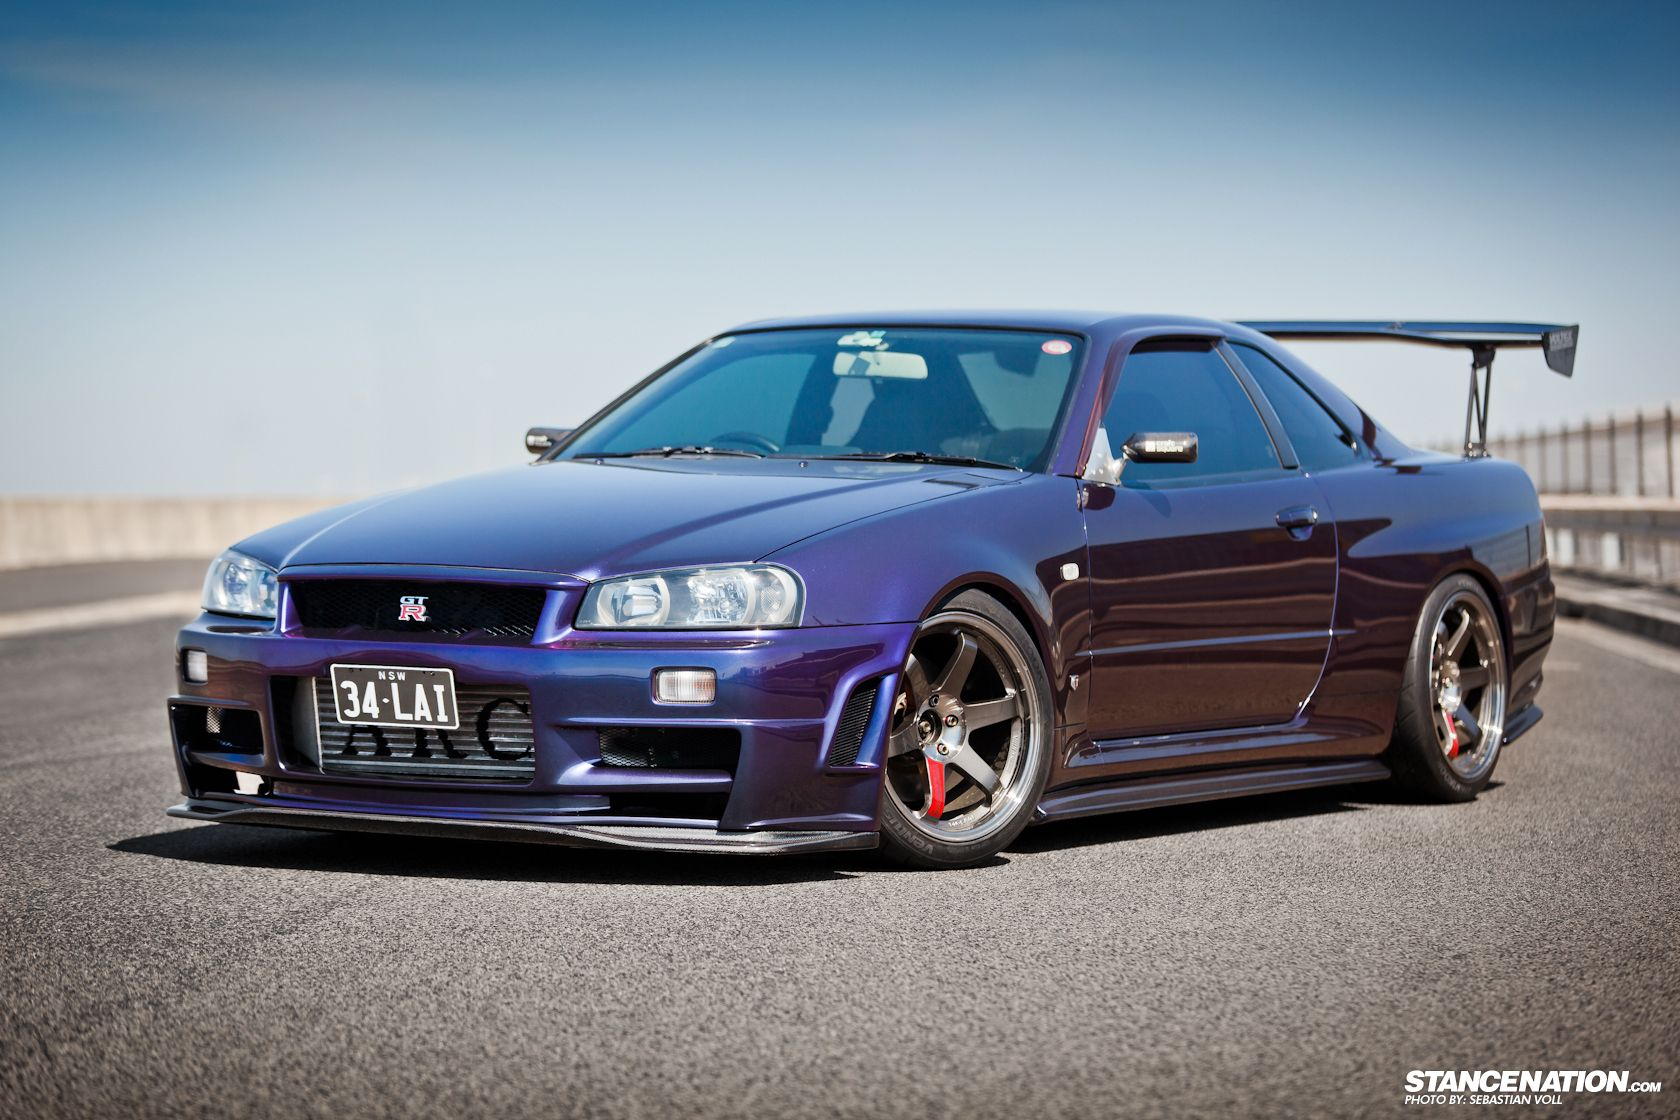 eibach equipped r34 on stancenation importtuner nissan skyline rh pinterest com